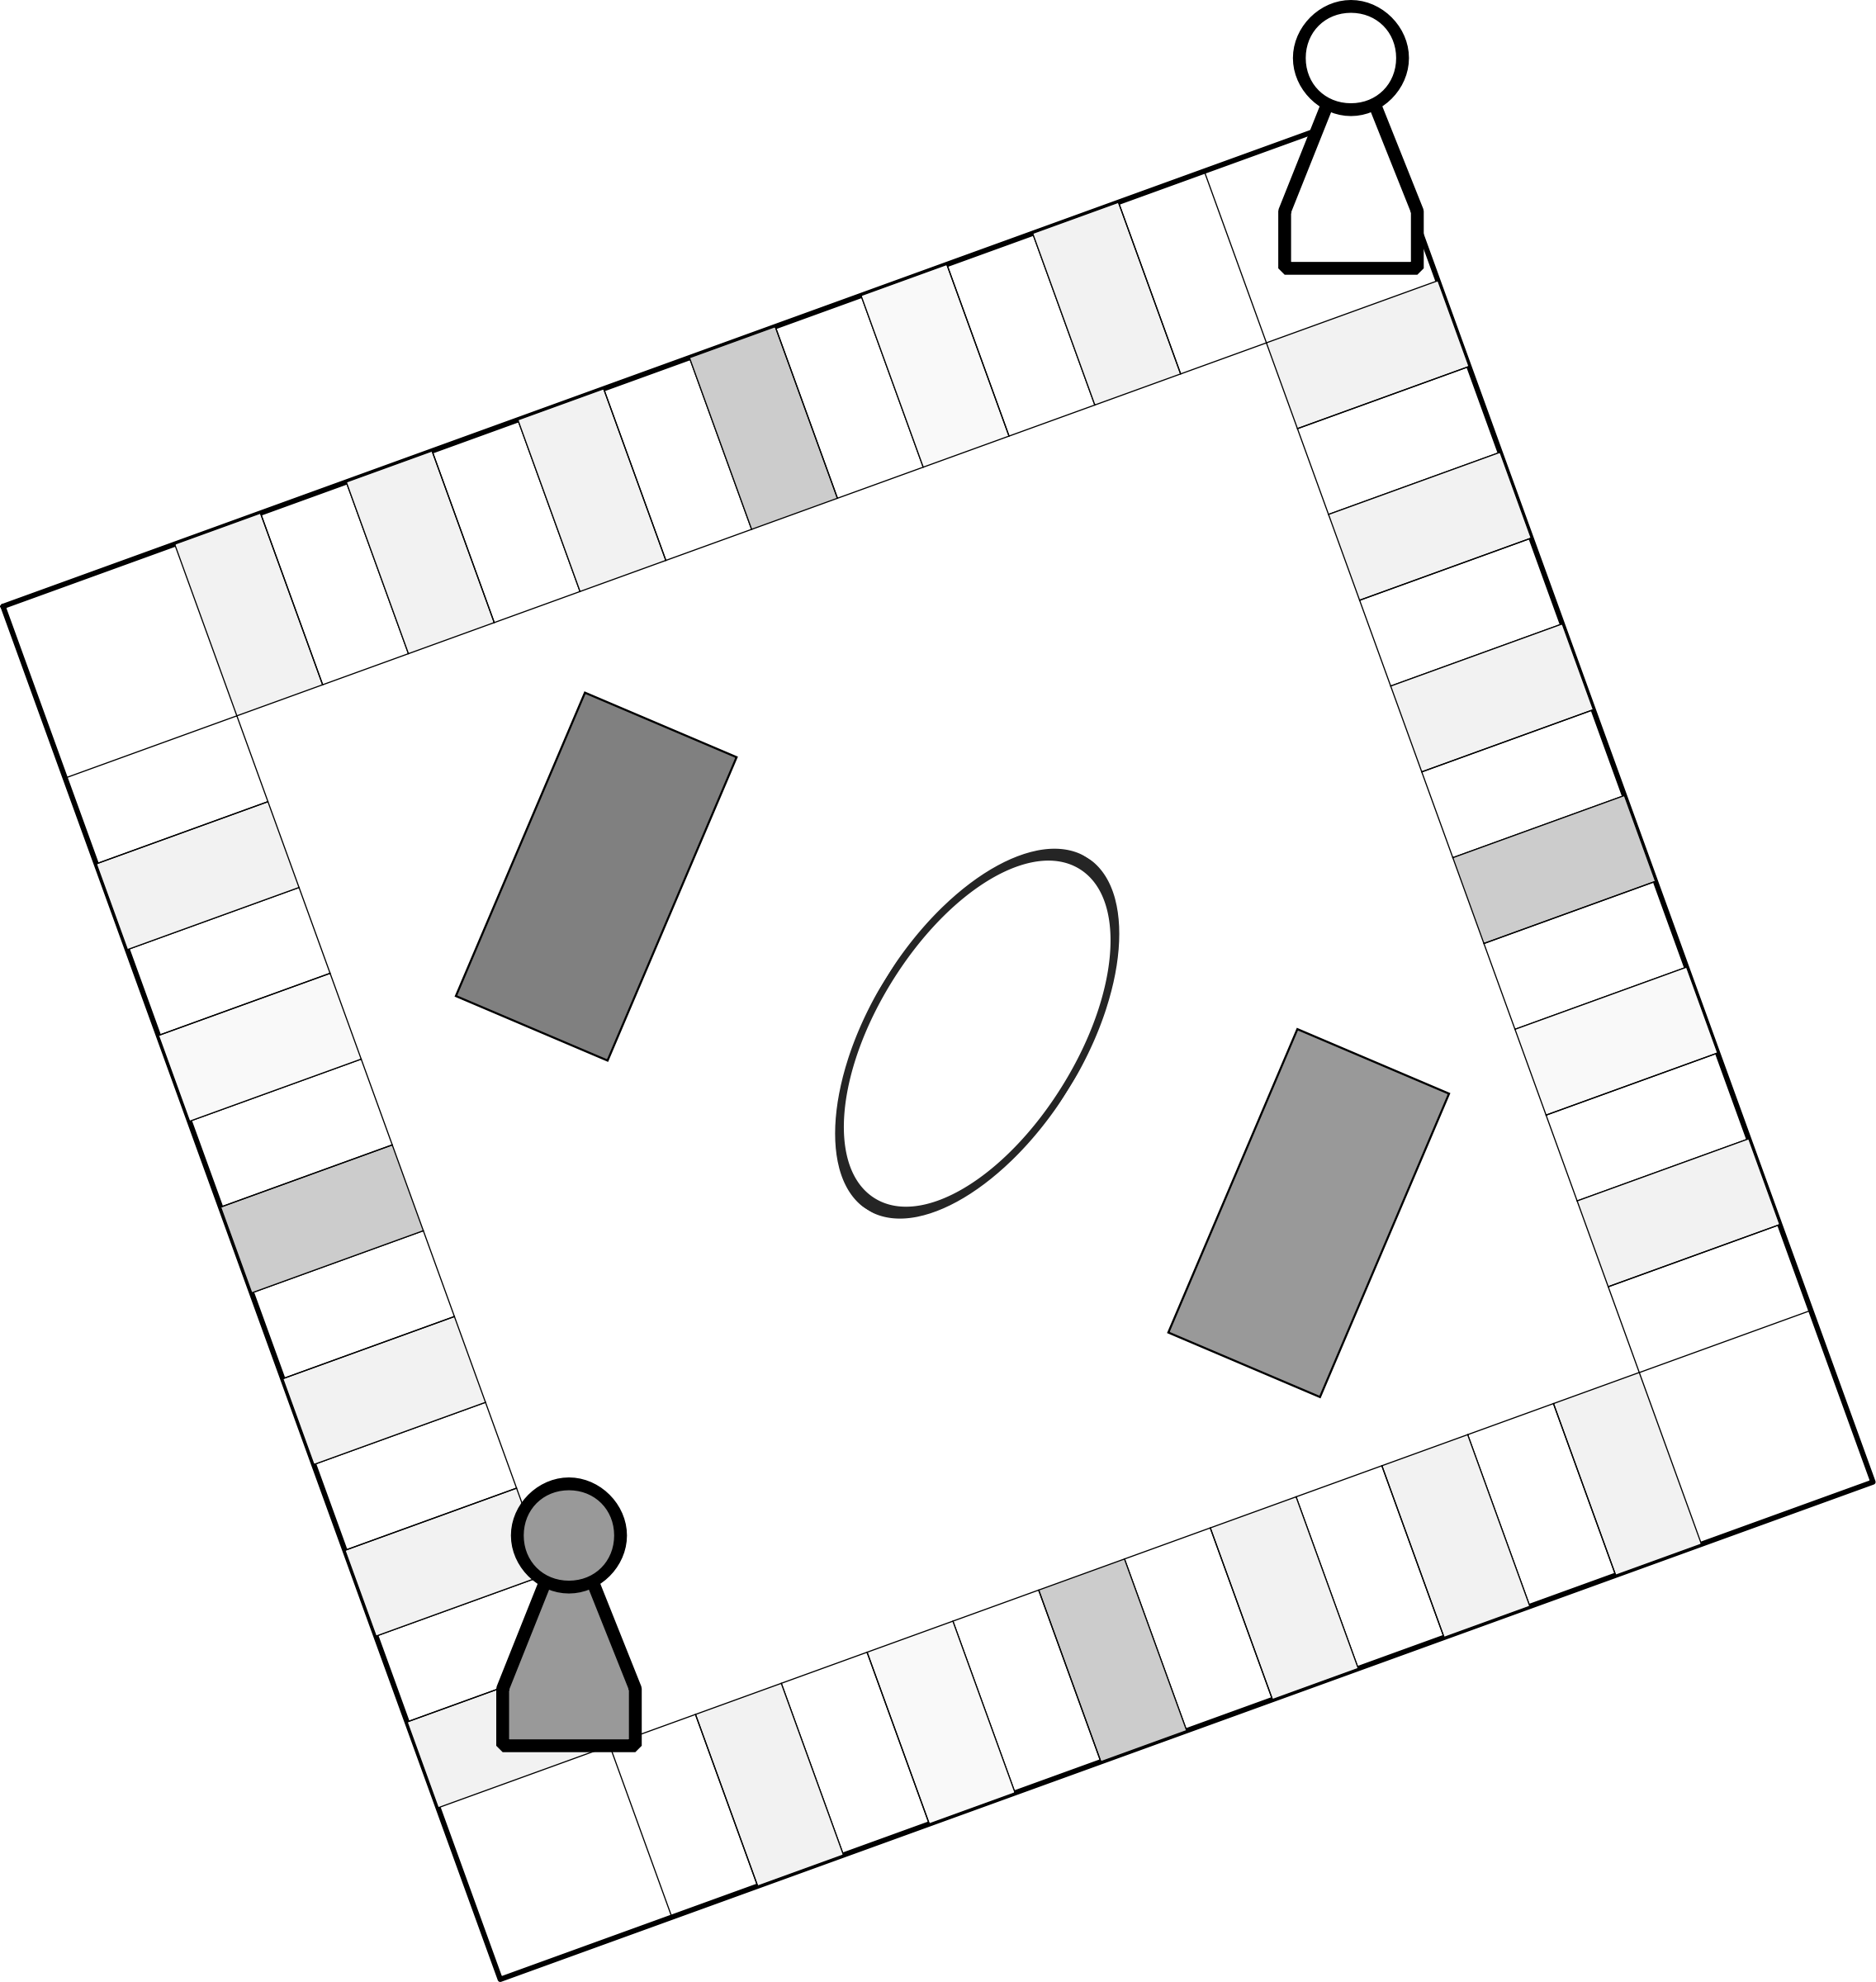 game board clipart black and white